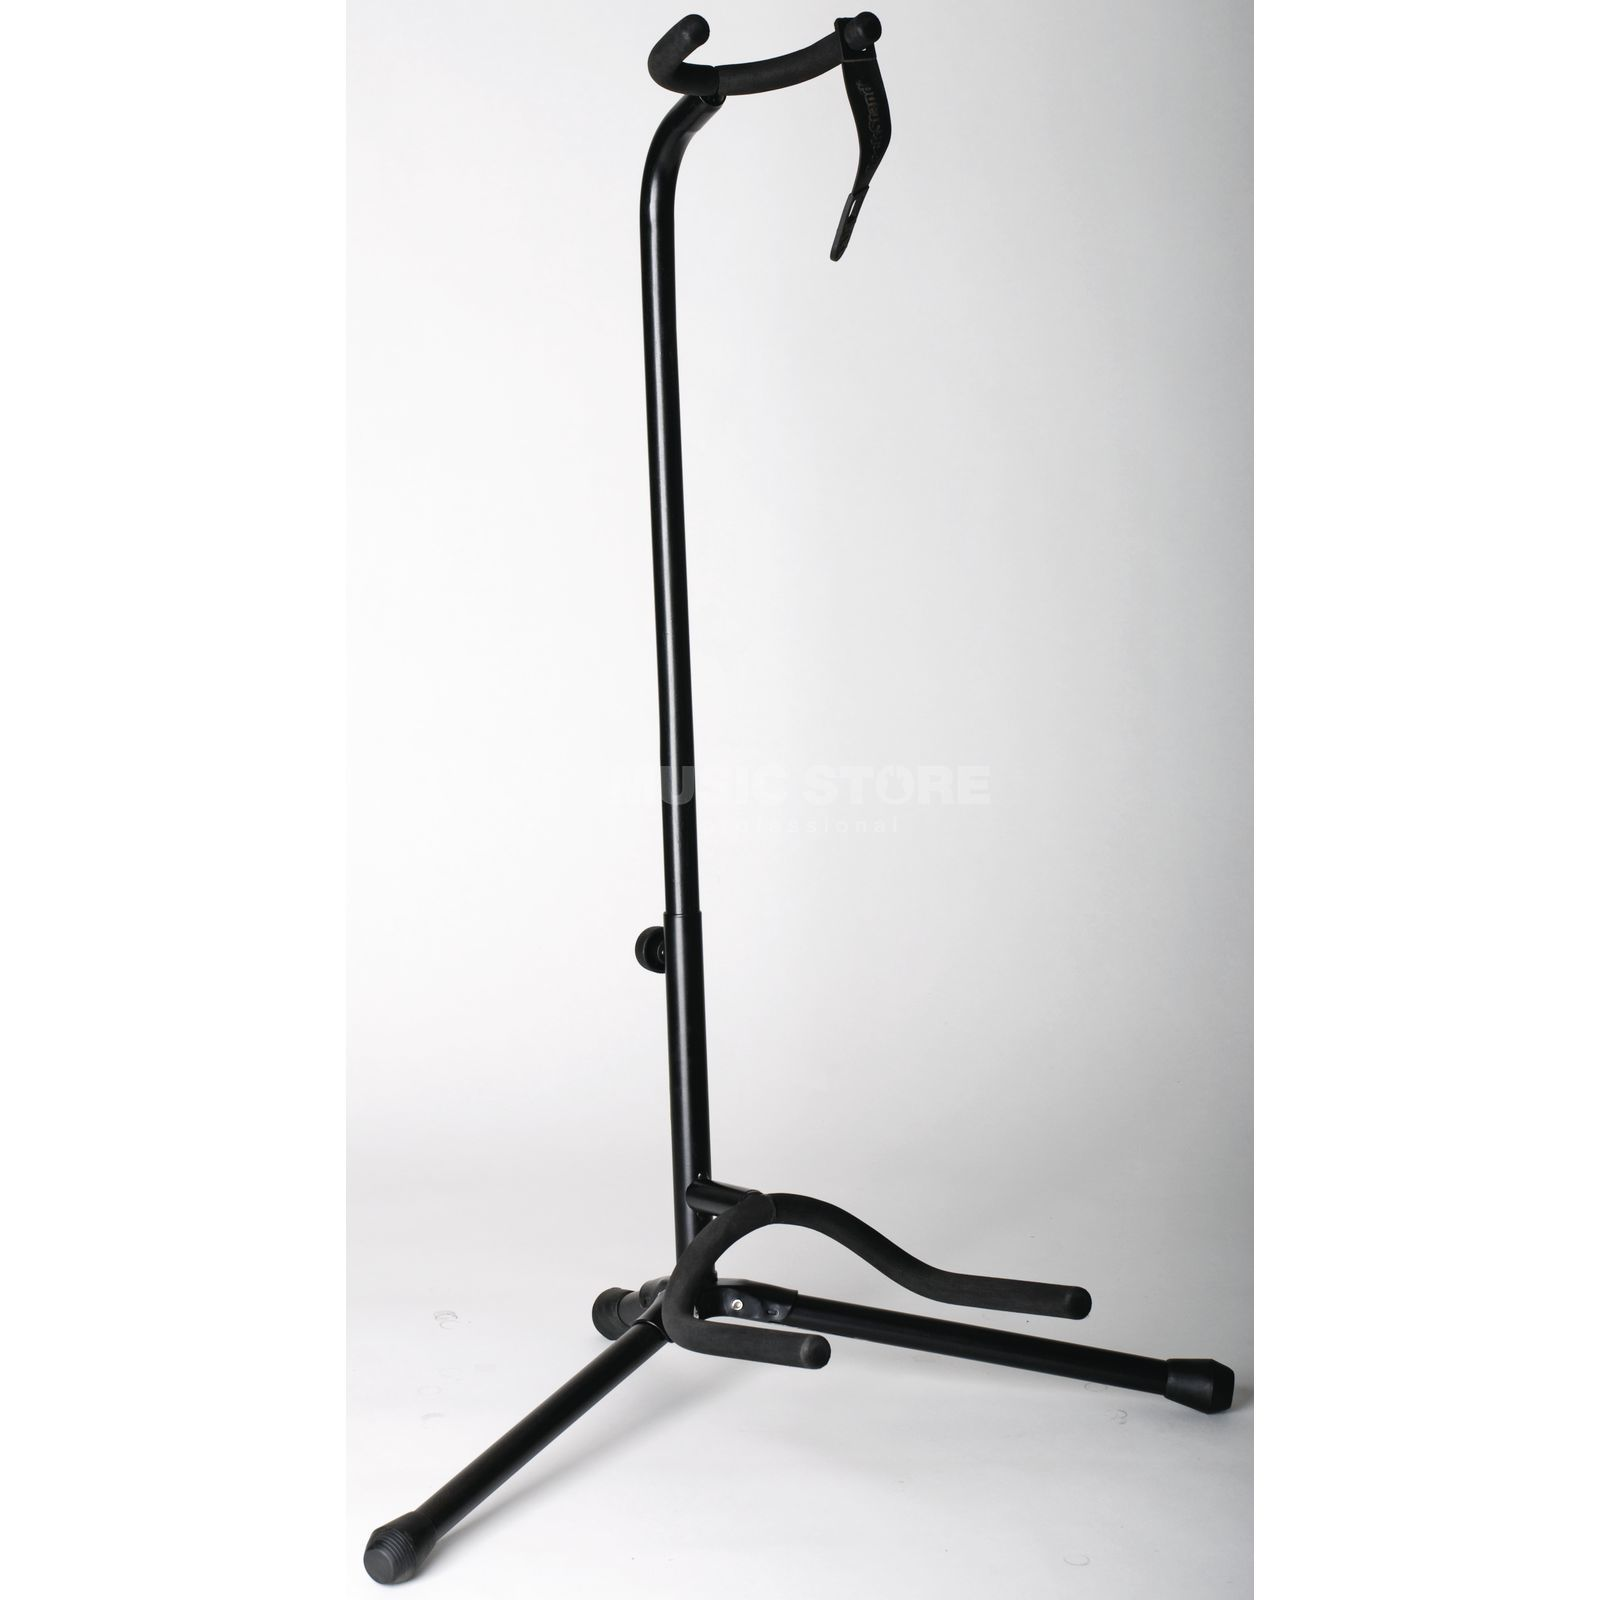 Rockstand Std. Guitar Stand for 1 Guitar HeightAdjustable, Folding Feet Produktbillede